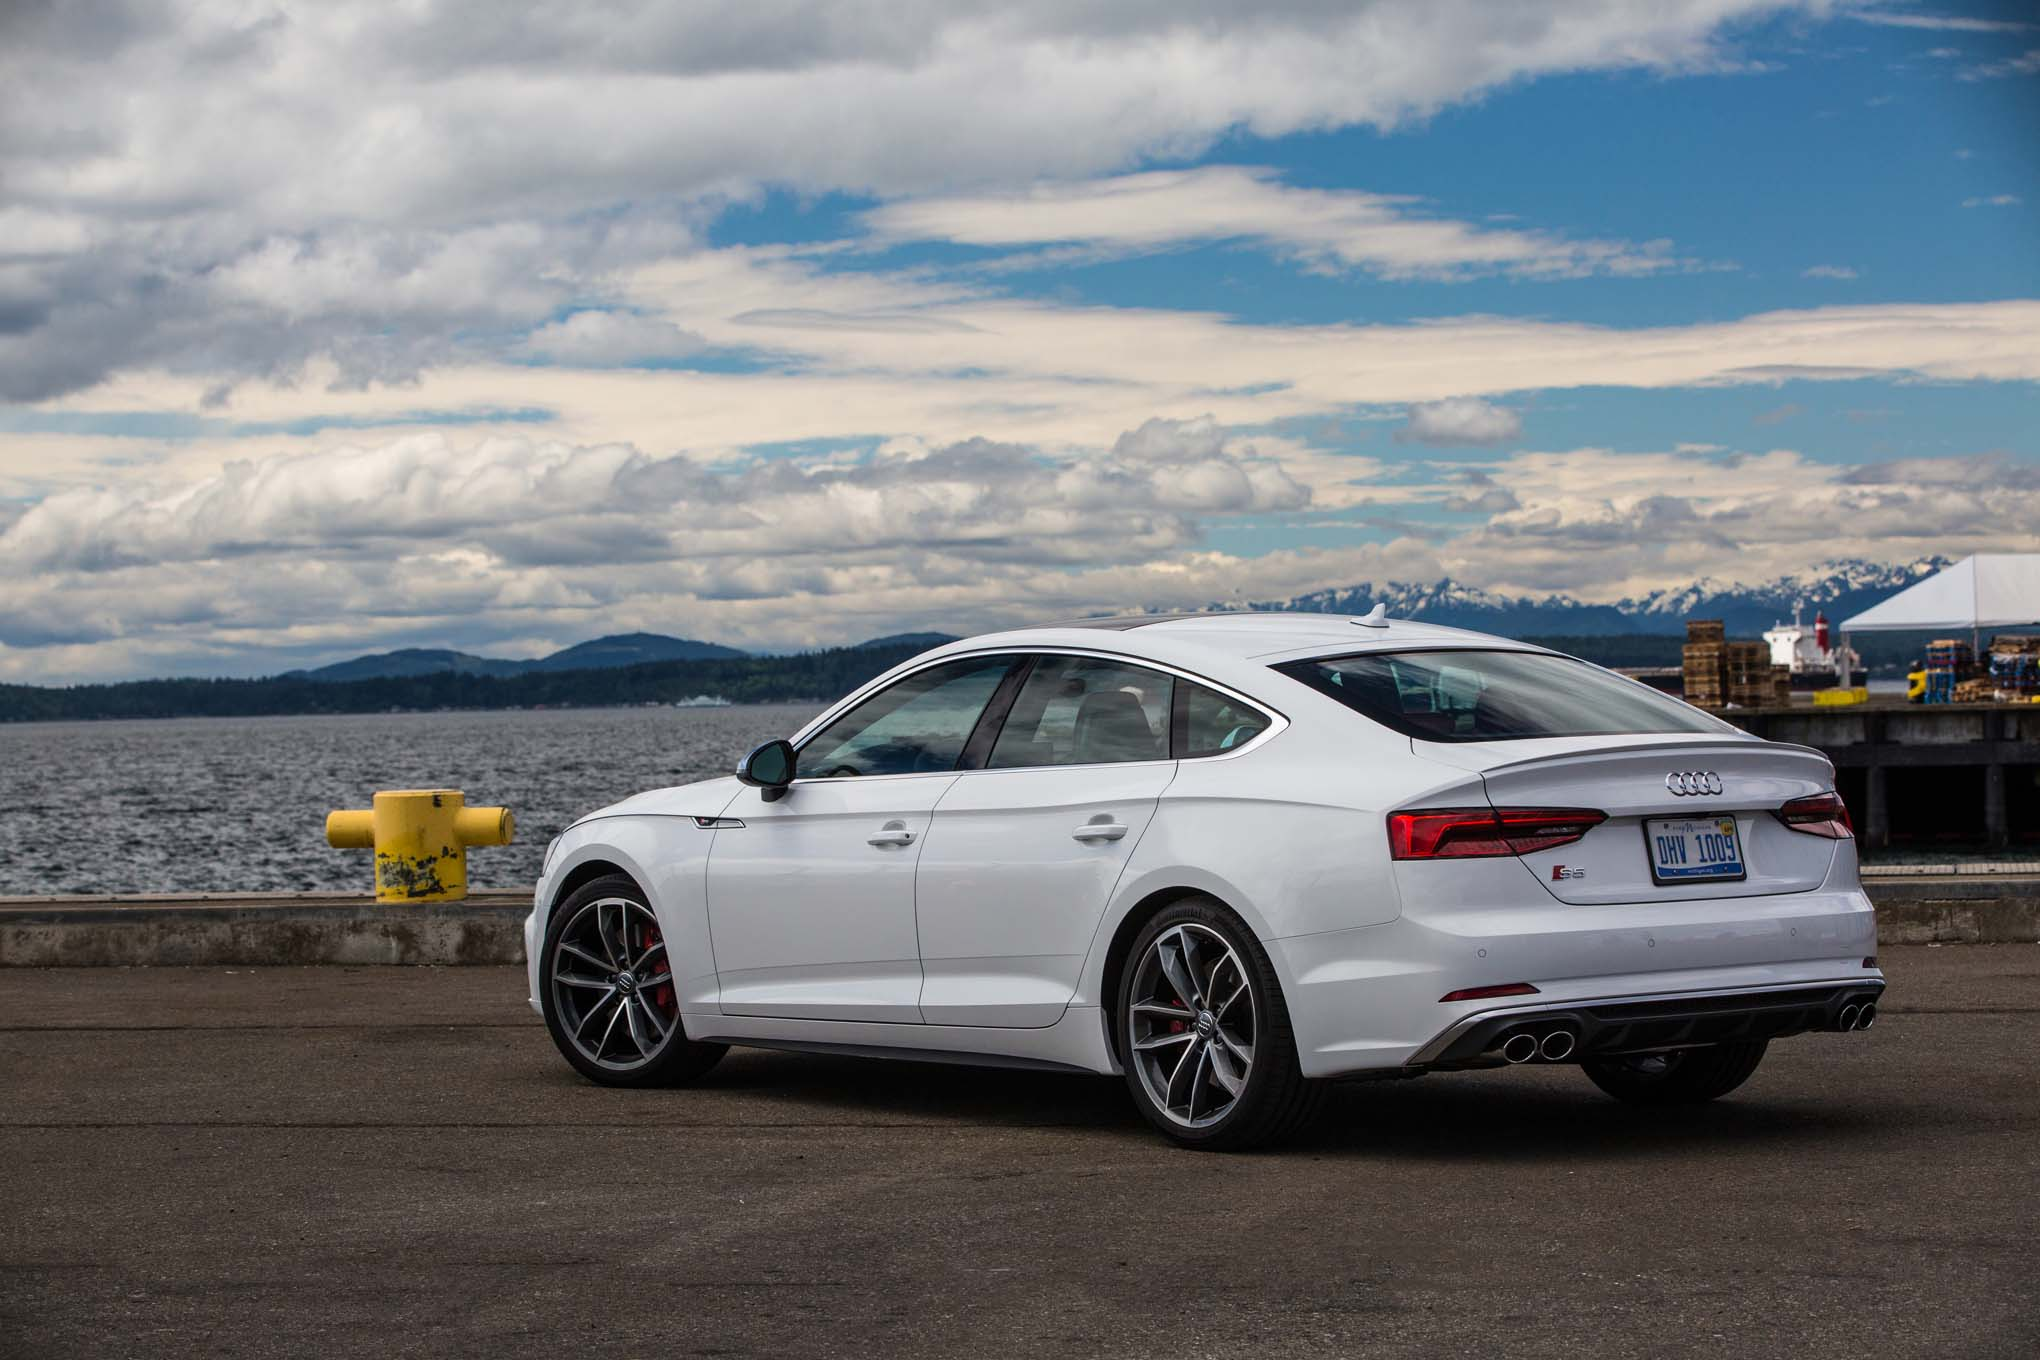 Audi A And S Sportback First Drive Review Automobile Magazine - Audi a5 sportback